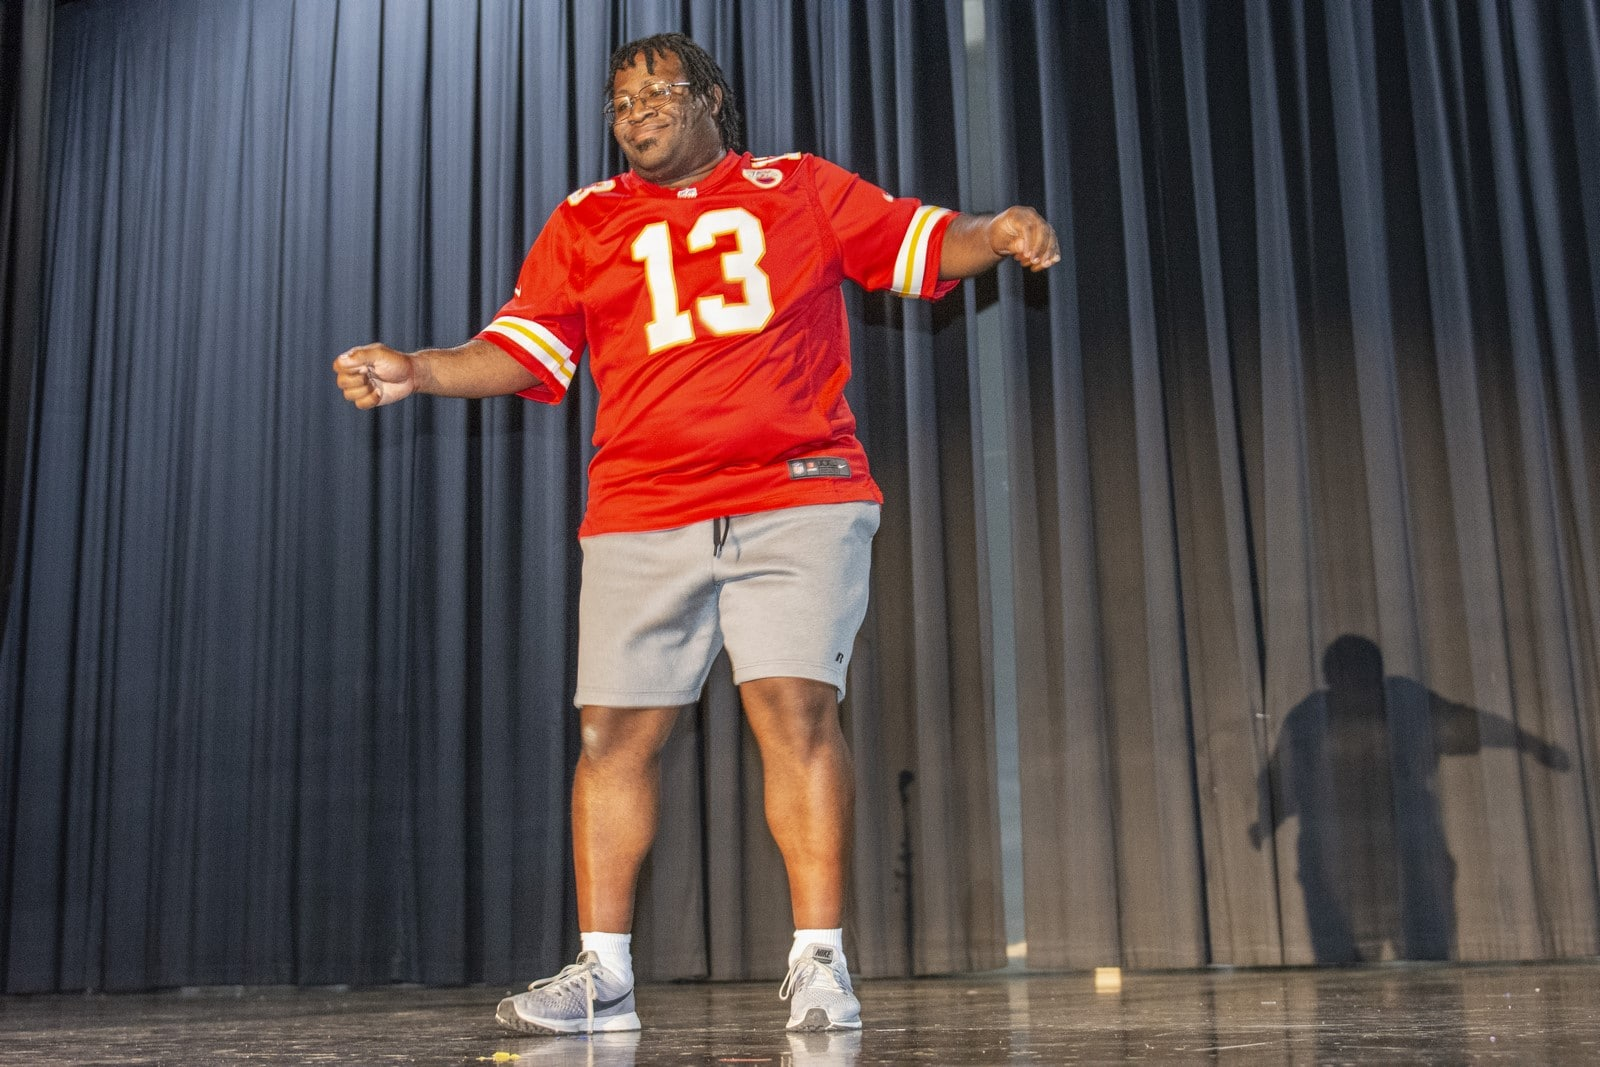 An athlete dances on stage during a talent show